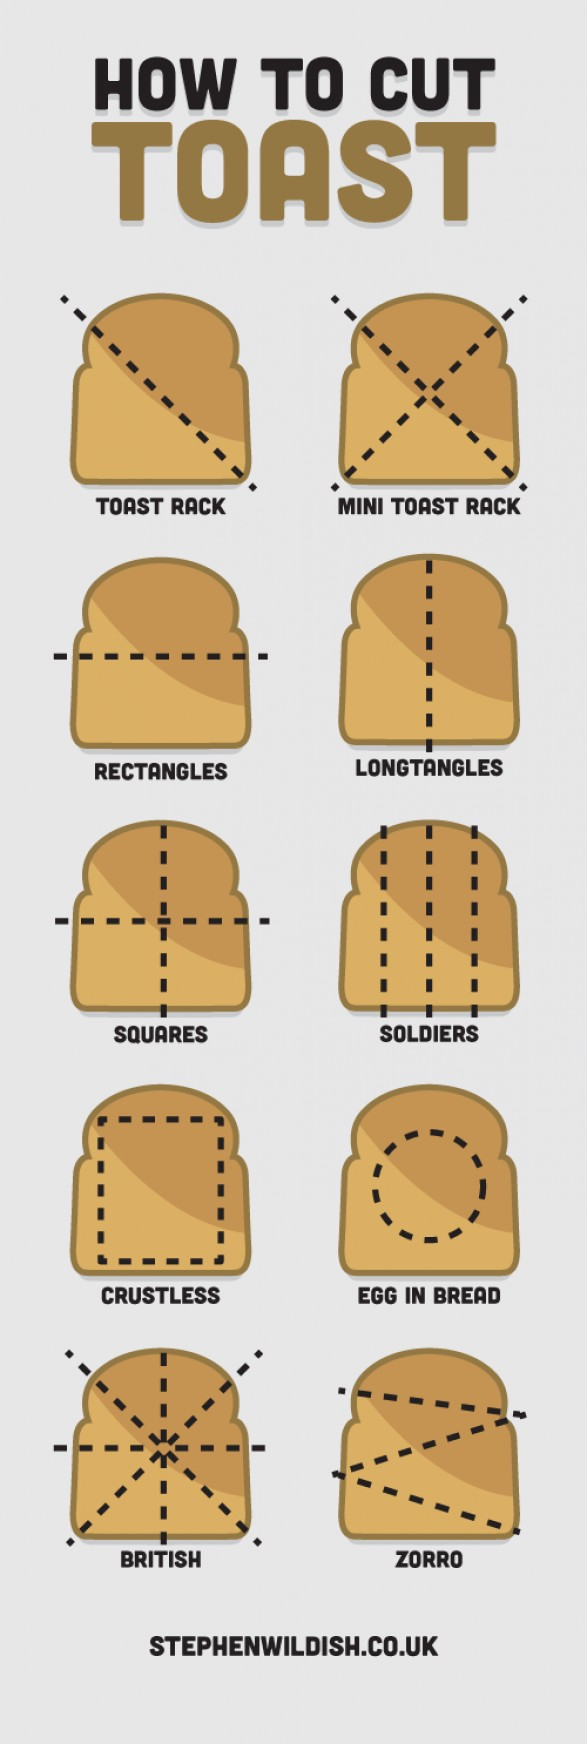 how-to-cut-toast_524e7e3da5e14_w587.png.jpeg